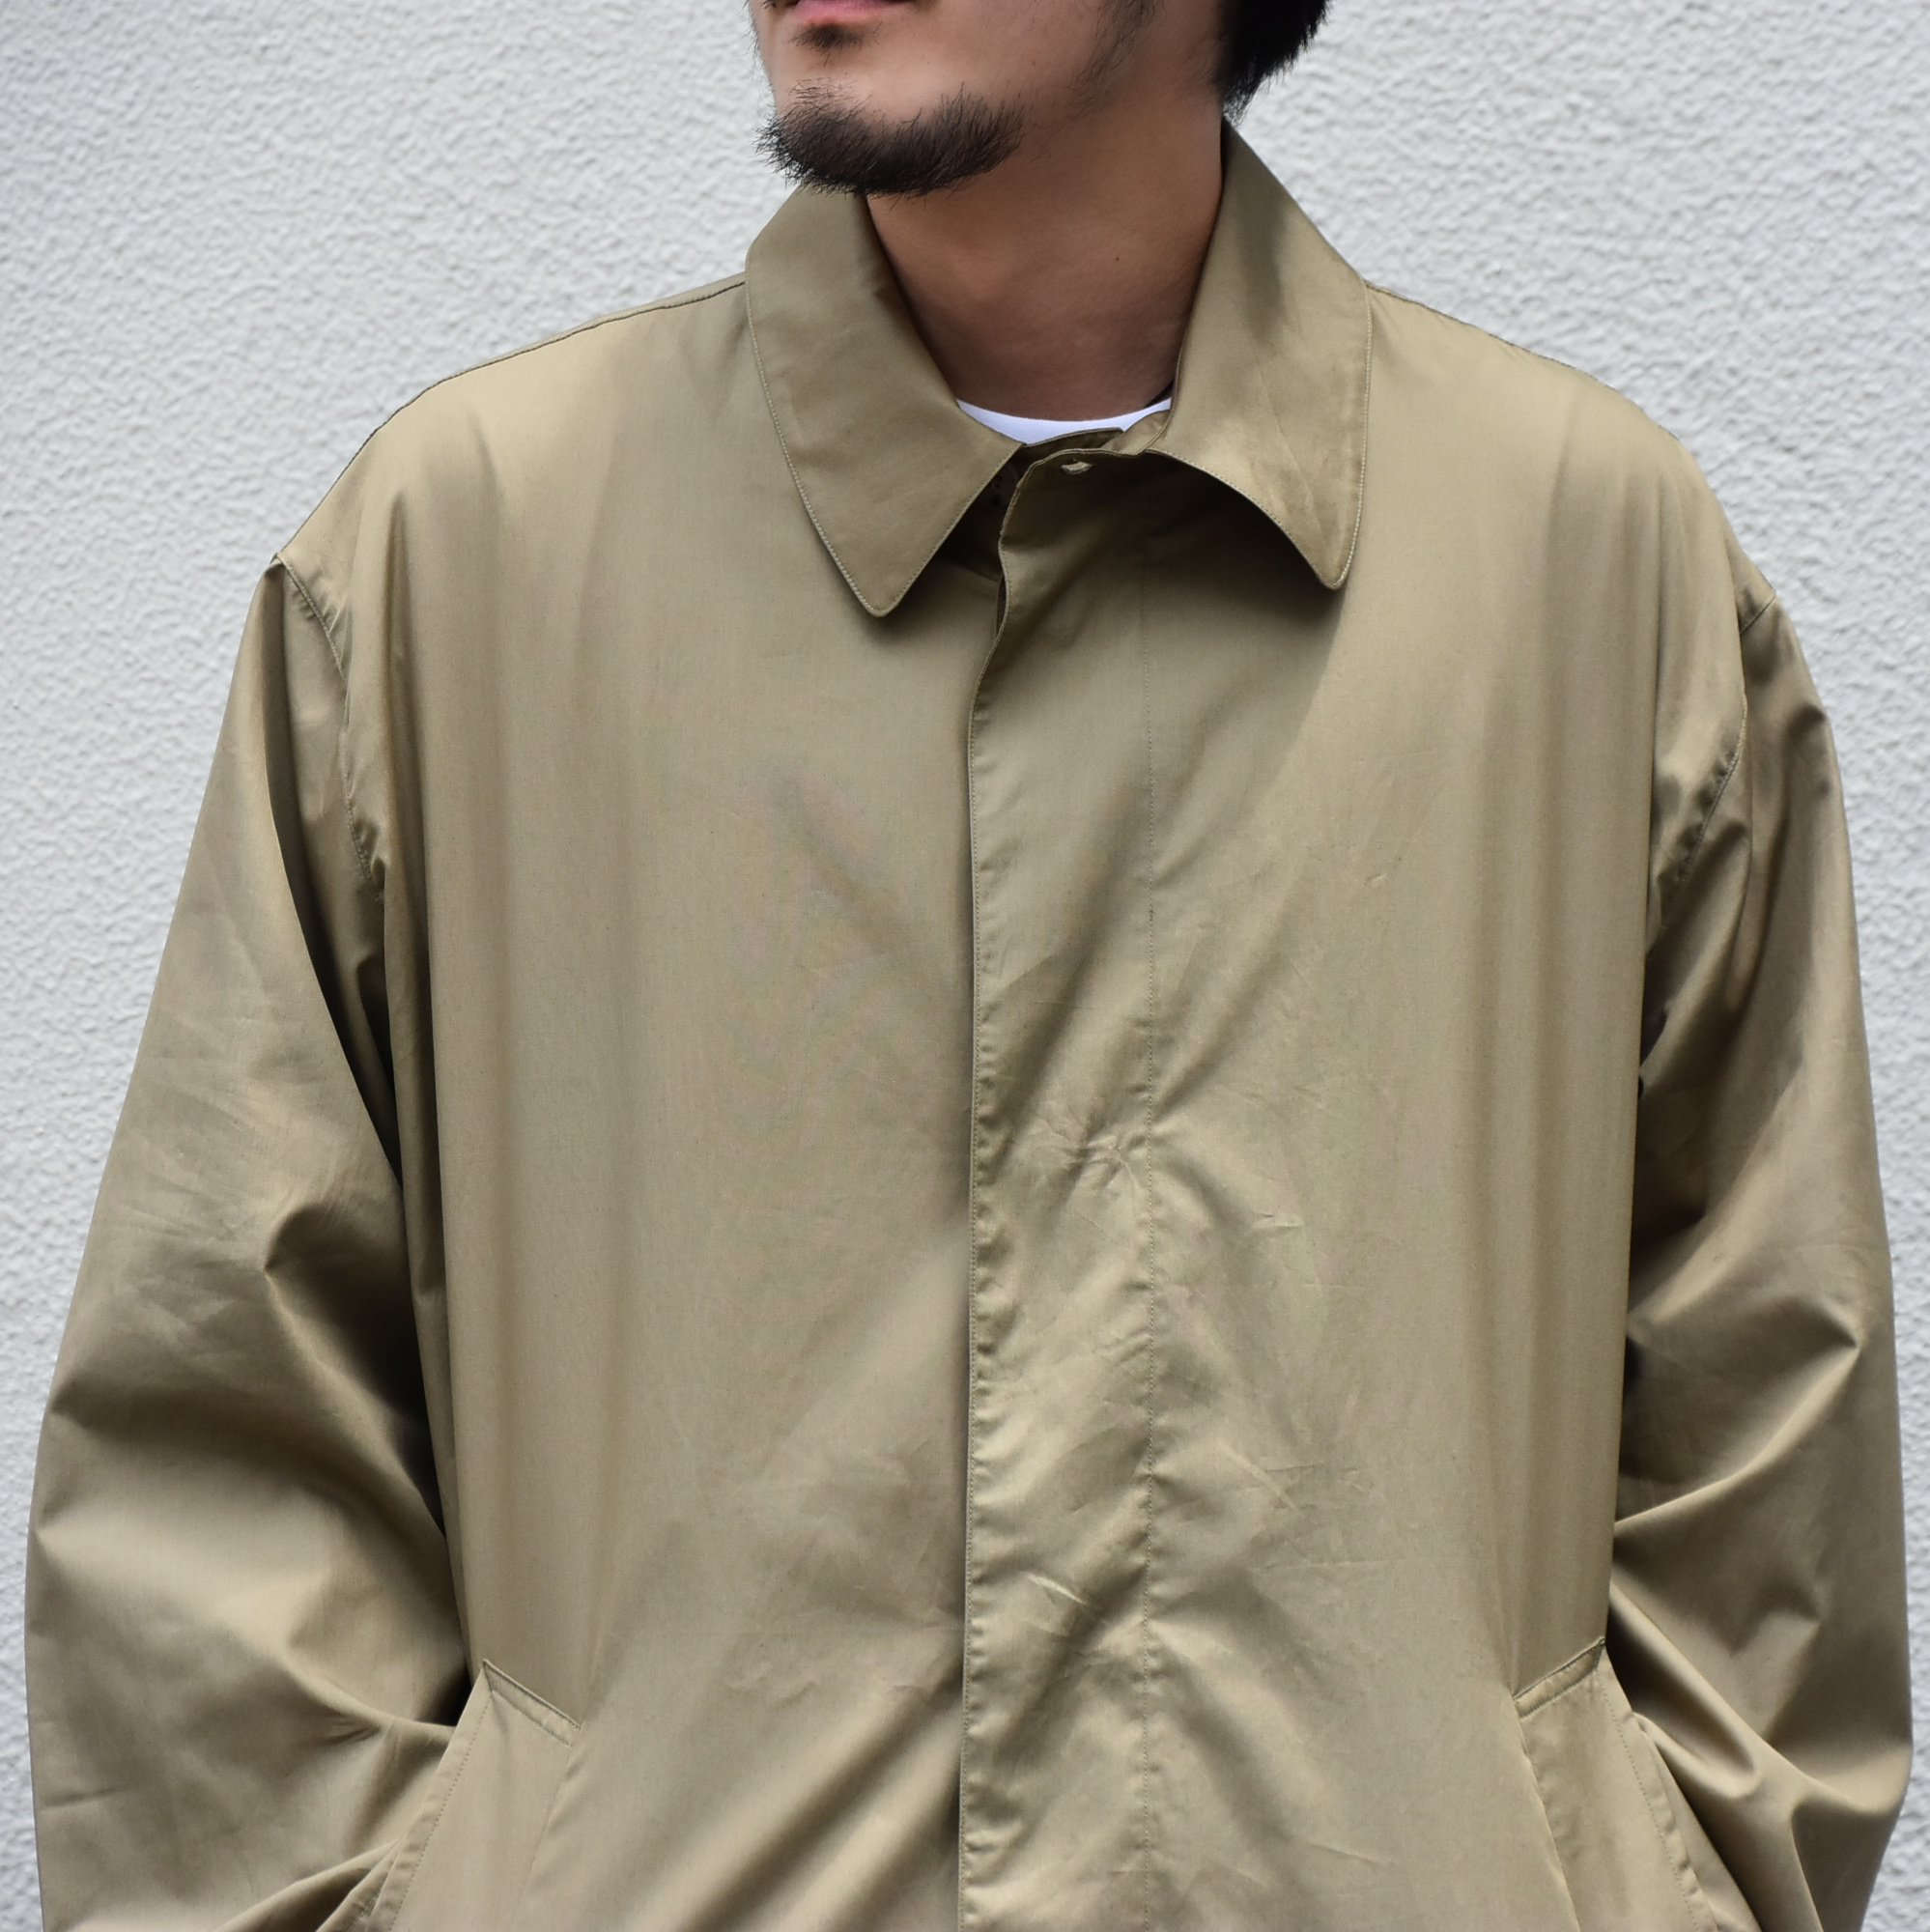 【2020】 Cristaseya(クリスタセヤ)/ OVERSIZED LIGHT COTTON SUMMER TRENCH -Light khaki- #01DA-C-LK(4)